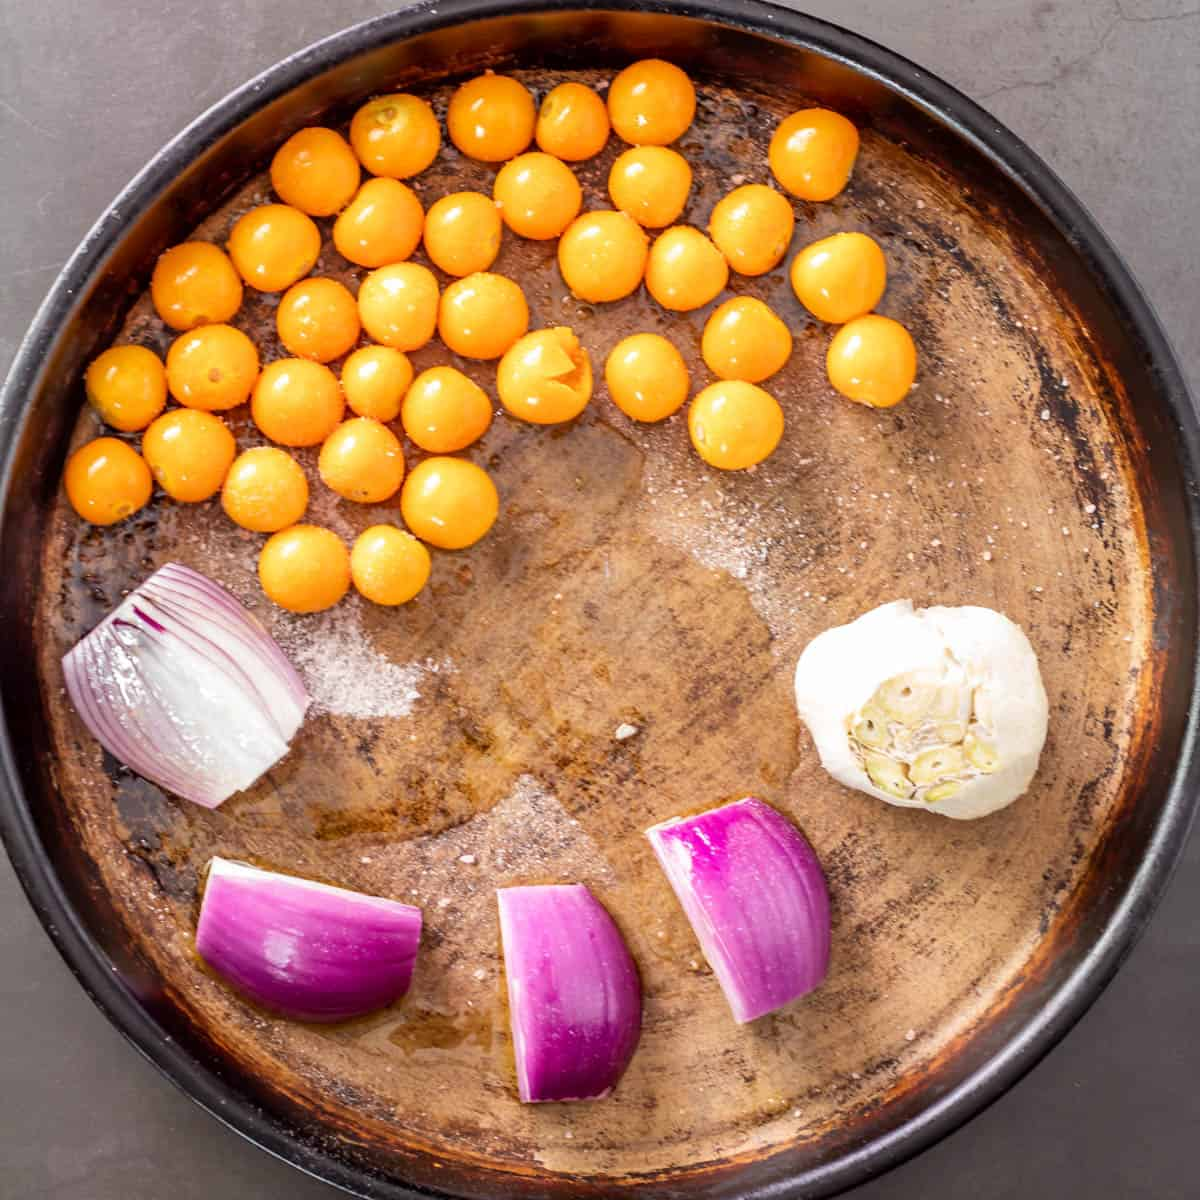 A clay baking dish with goldenberries, red onion, and garlic before roasting.